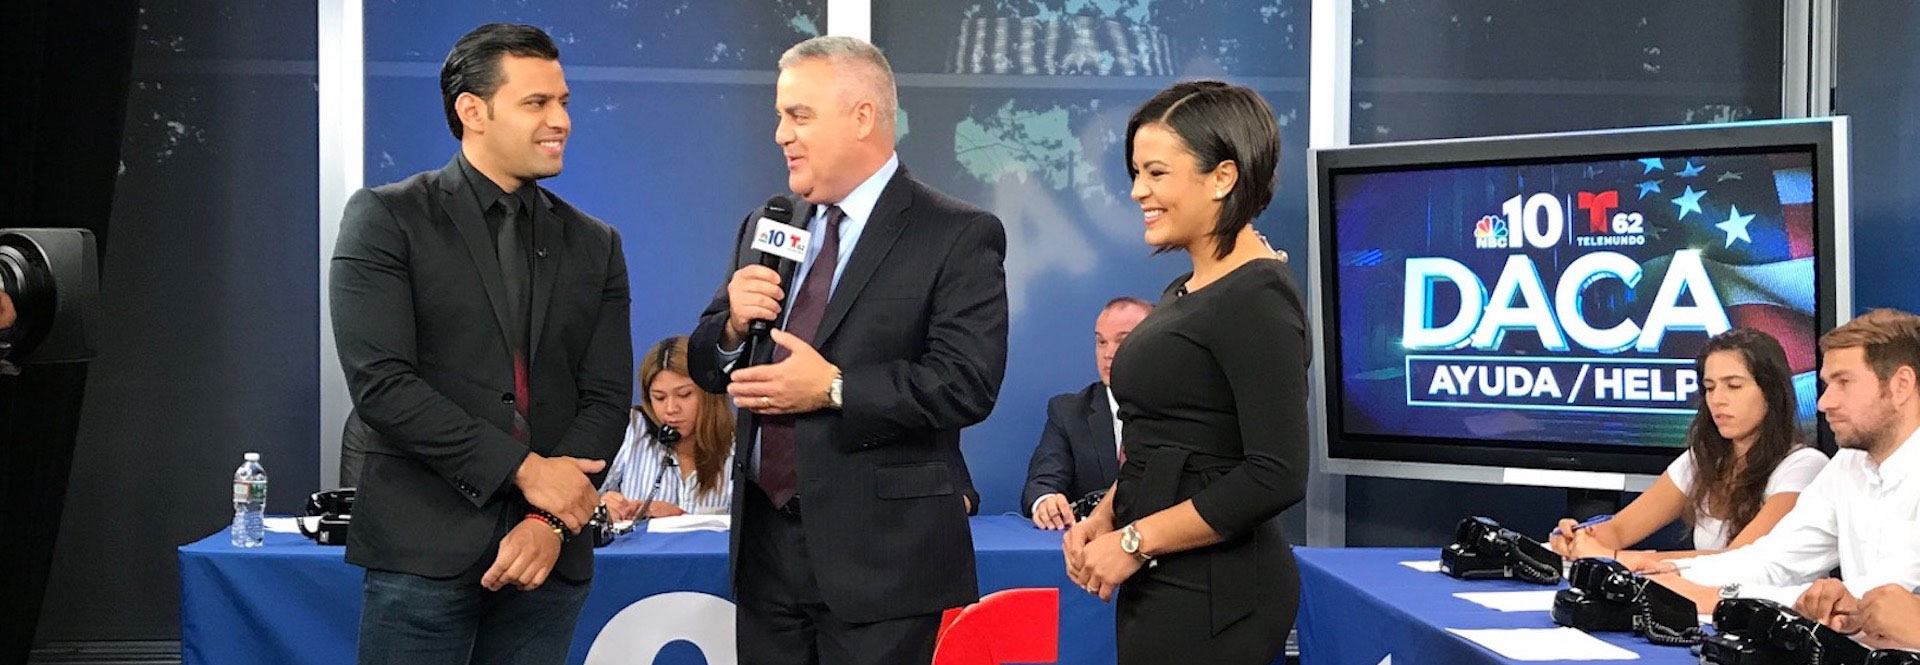 """NBC10 and Telemundo62Hosting """"DACA"""" Informational Phone Bank on Thursday, September 28th 2017. Photo shared by Diana Torralvo of NBCUniversal."""